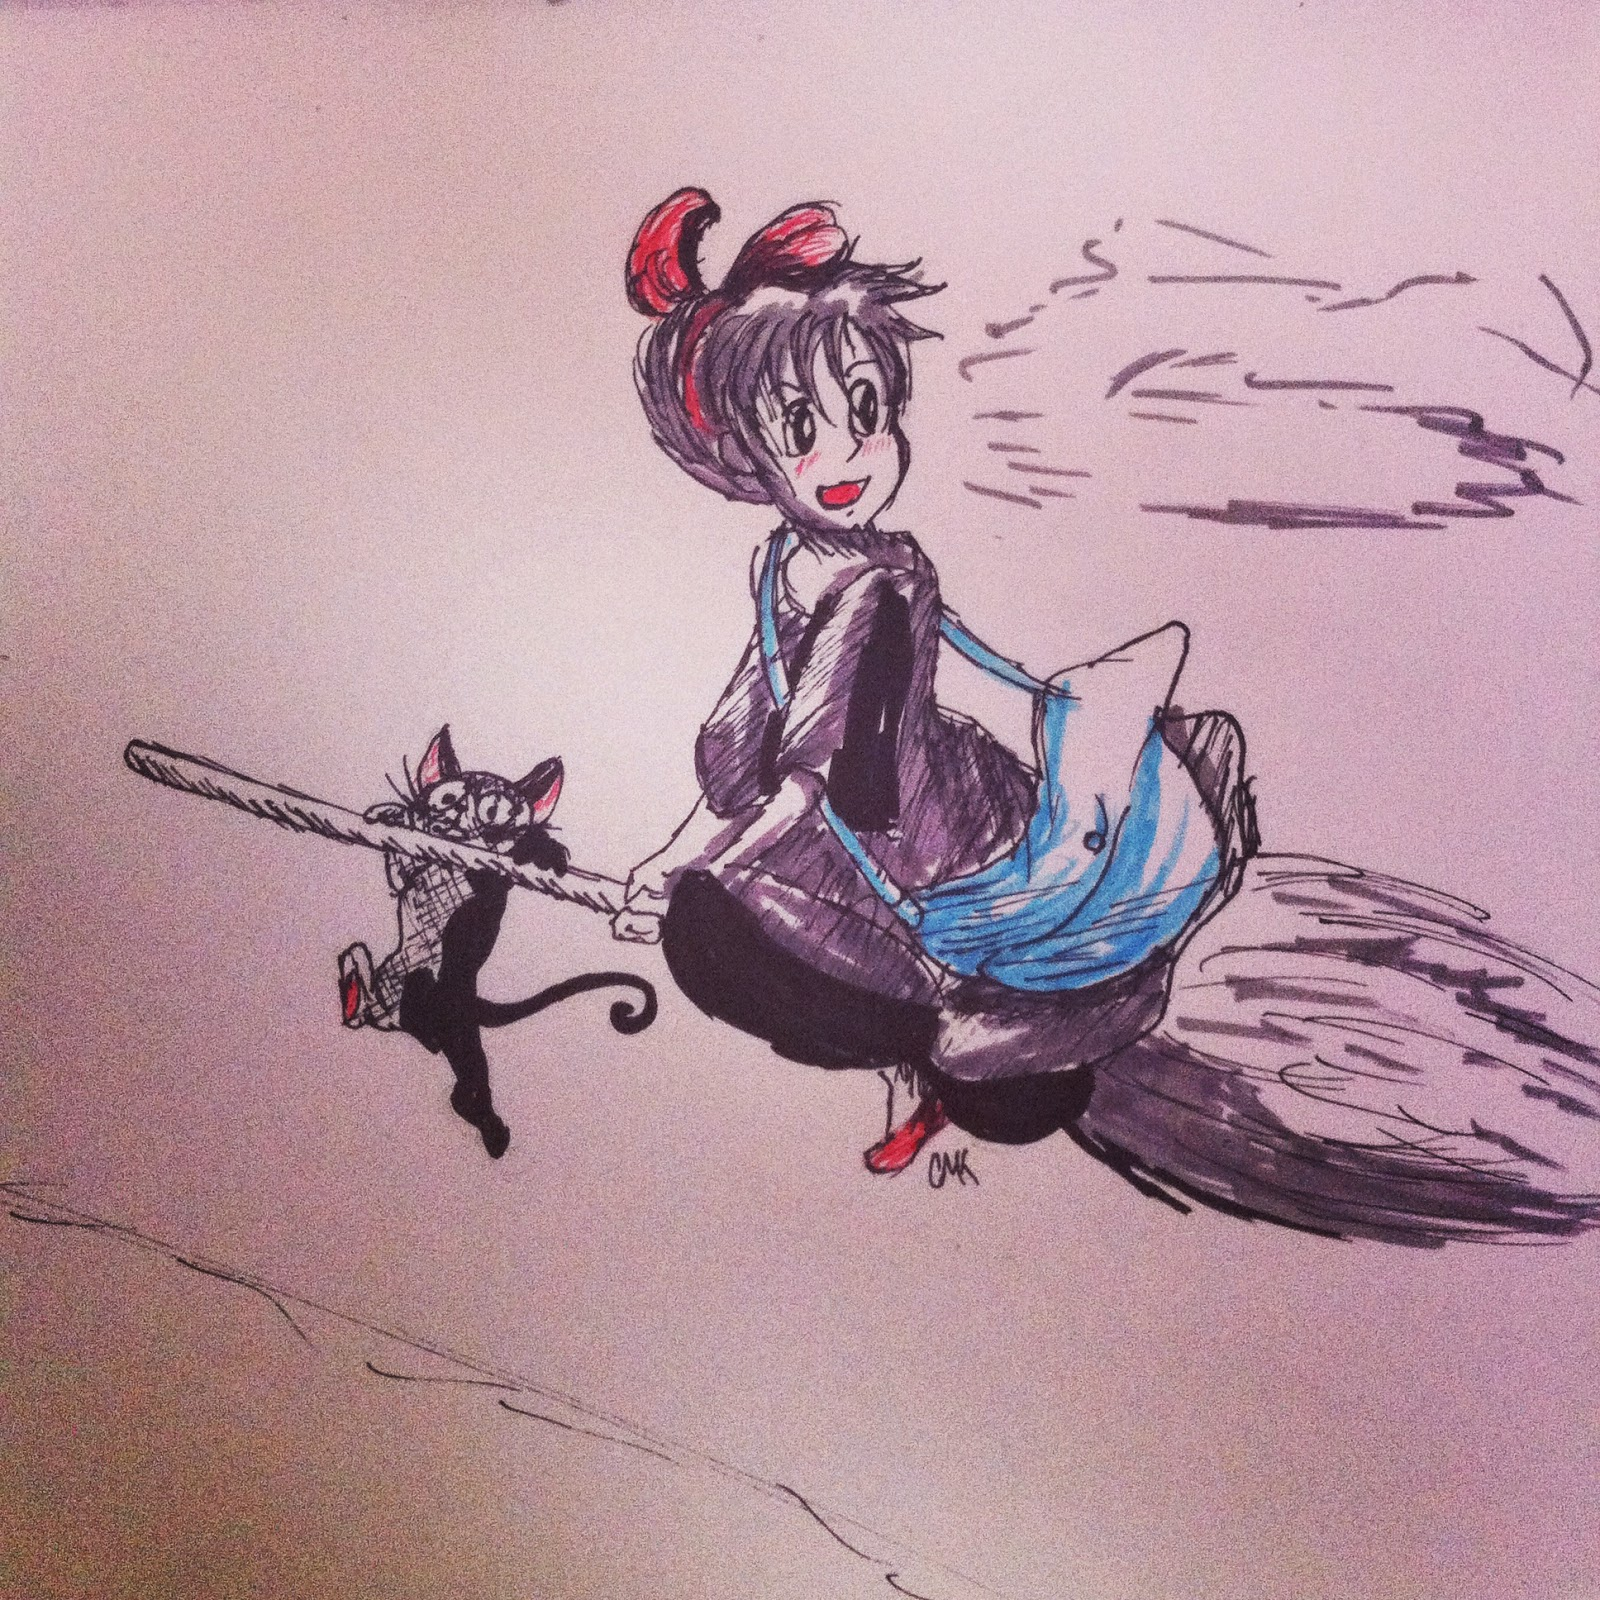 Kiki and Jiji from kiki's delivery service